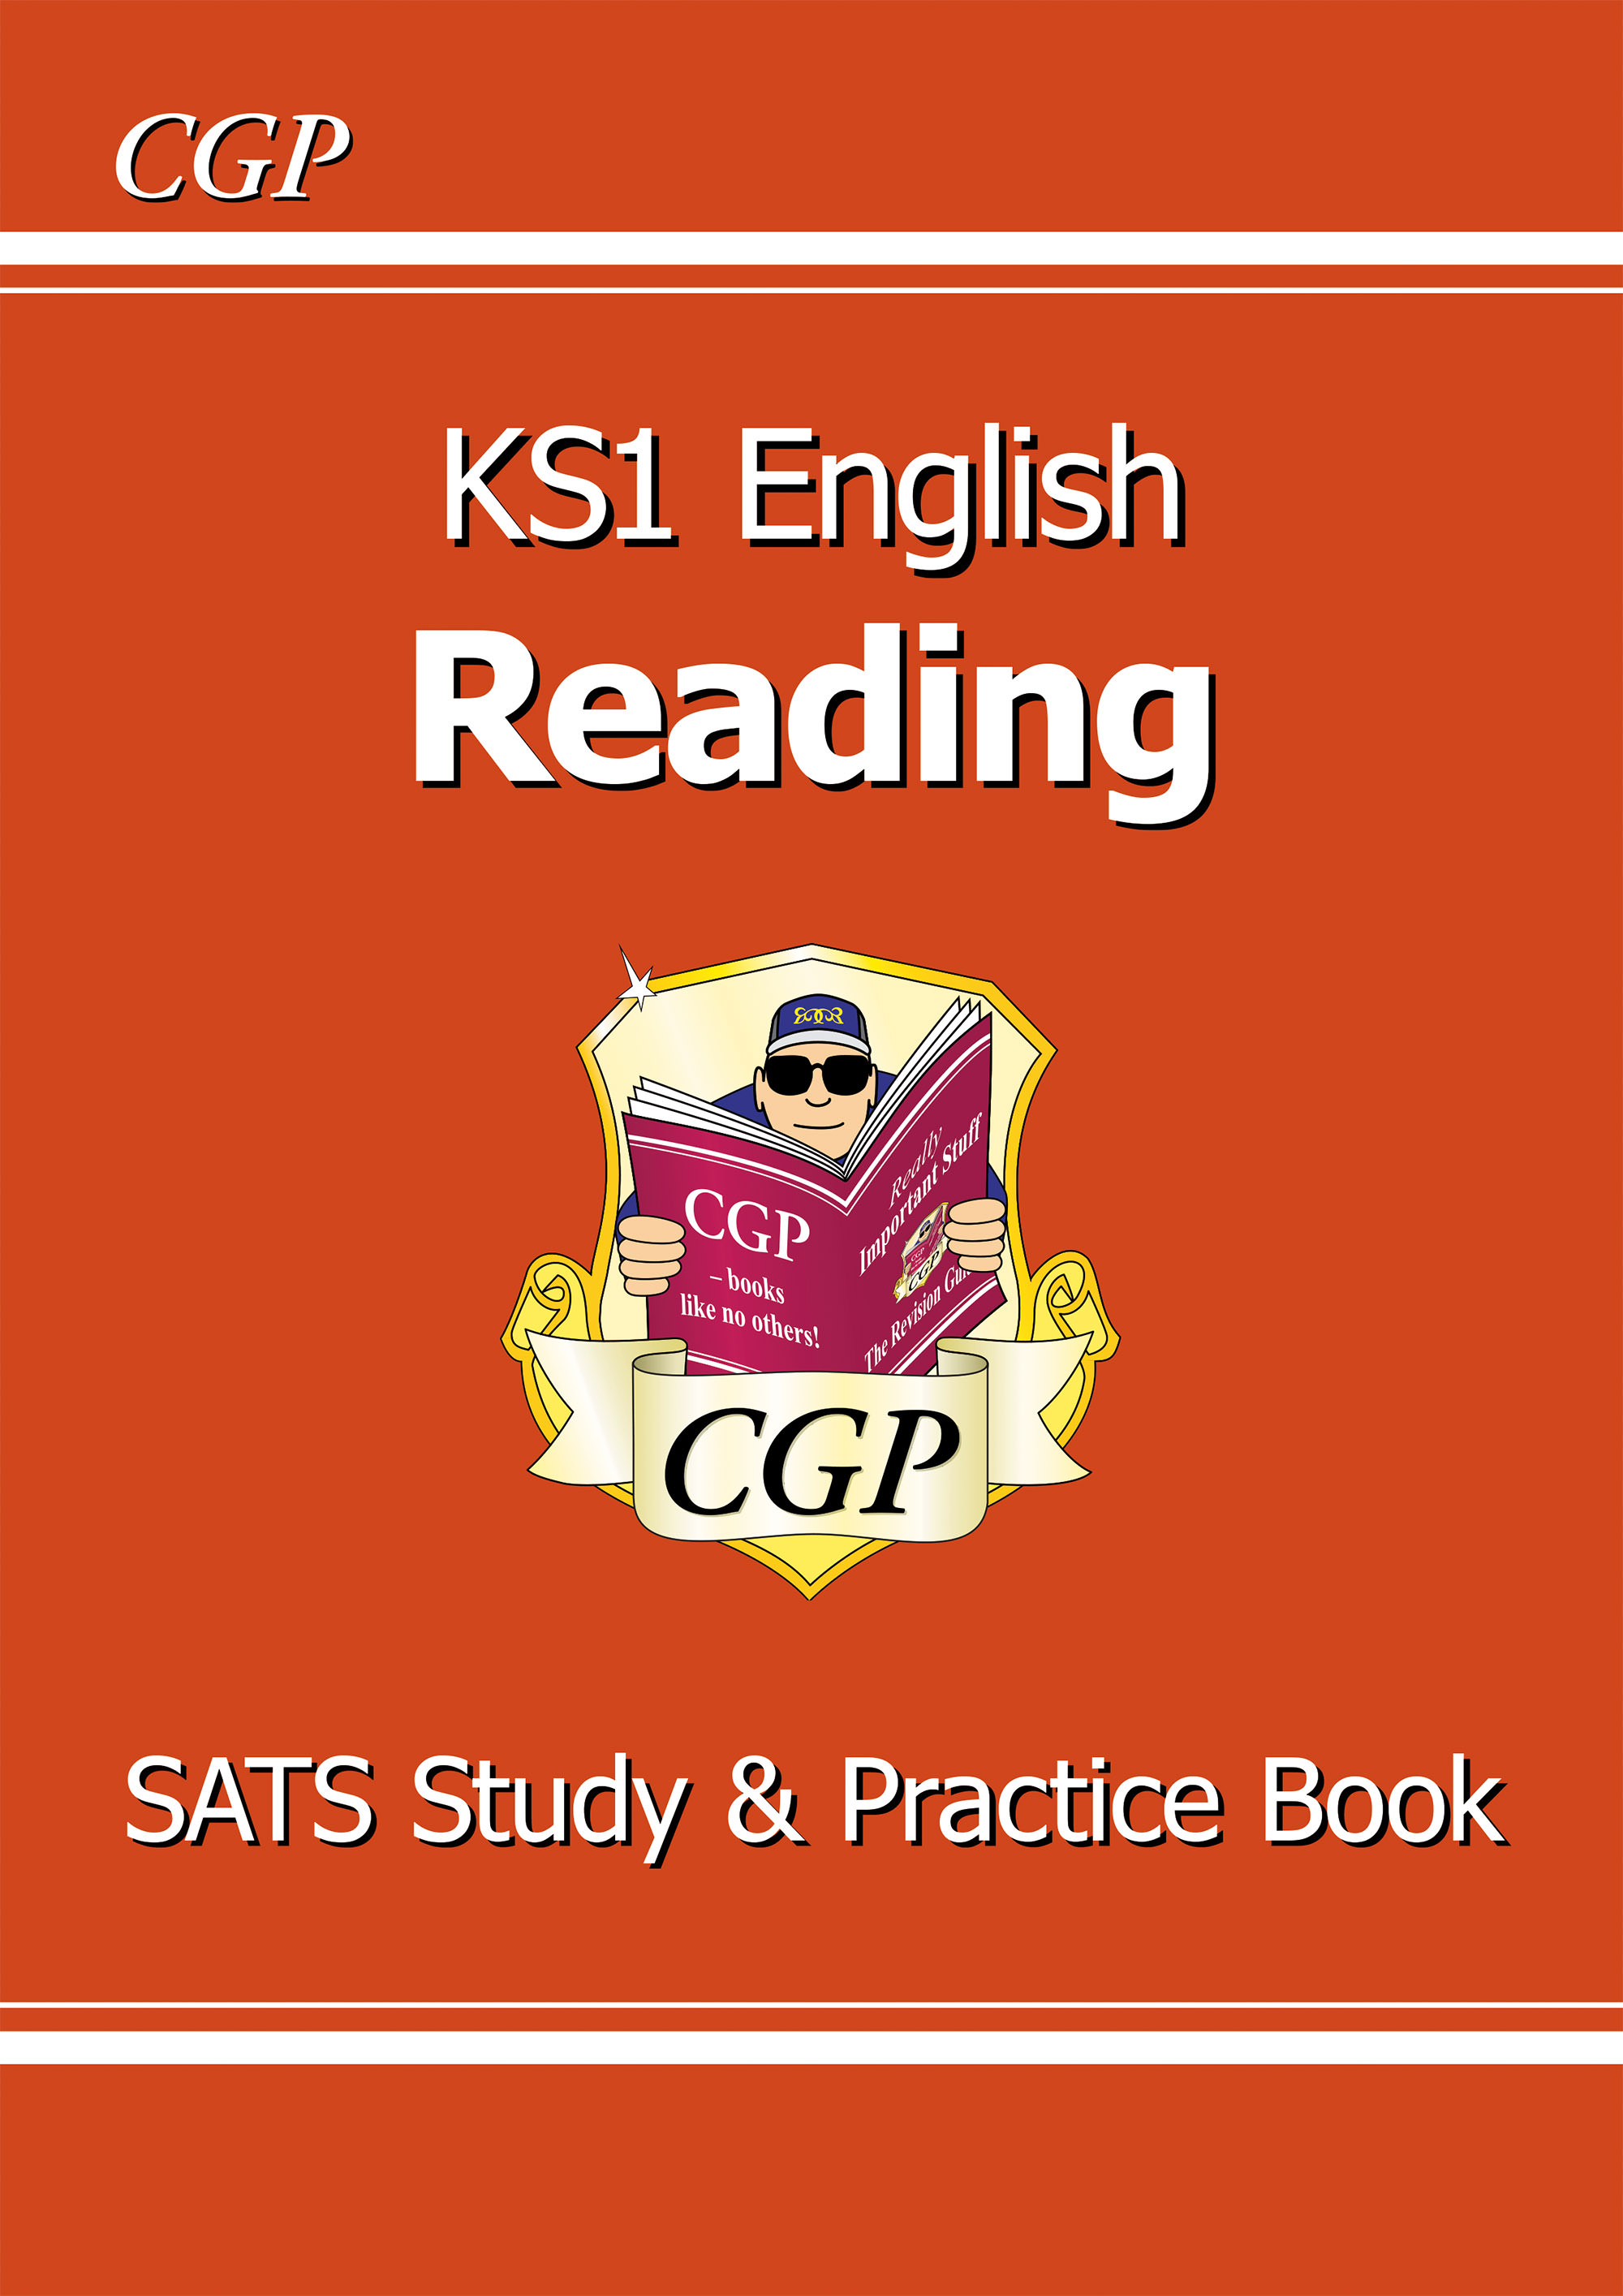 ERR11DK - KS1 English Reading Study & Practice Book